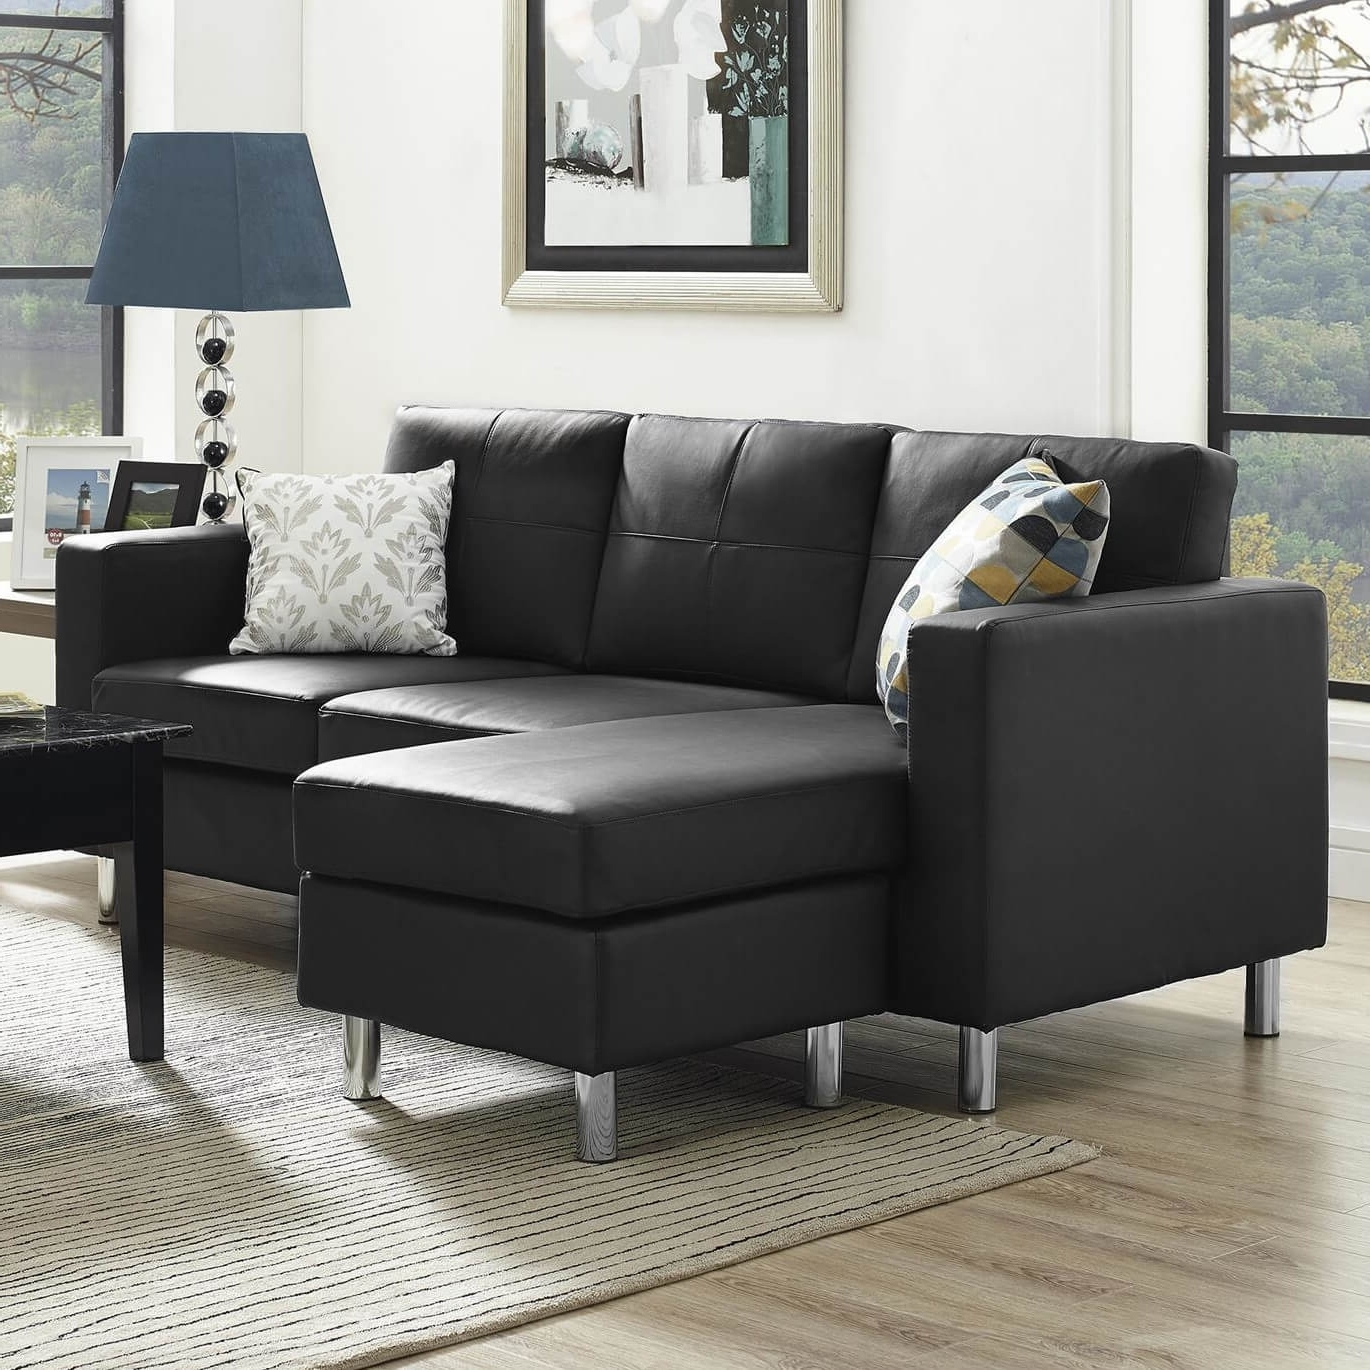 2019 40 Cheap Sectional Sofas Under $500 For 2018 For Sectional Sofas Under (View 15 of 20)